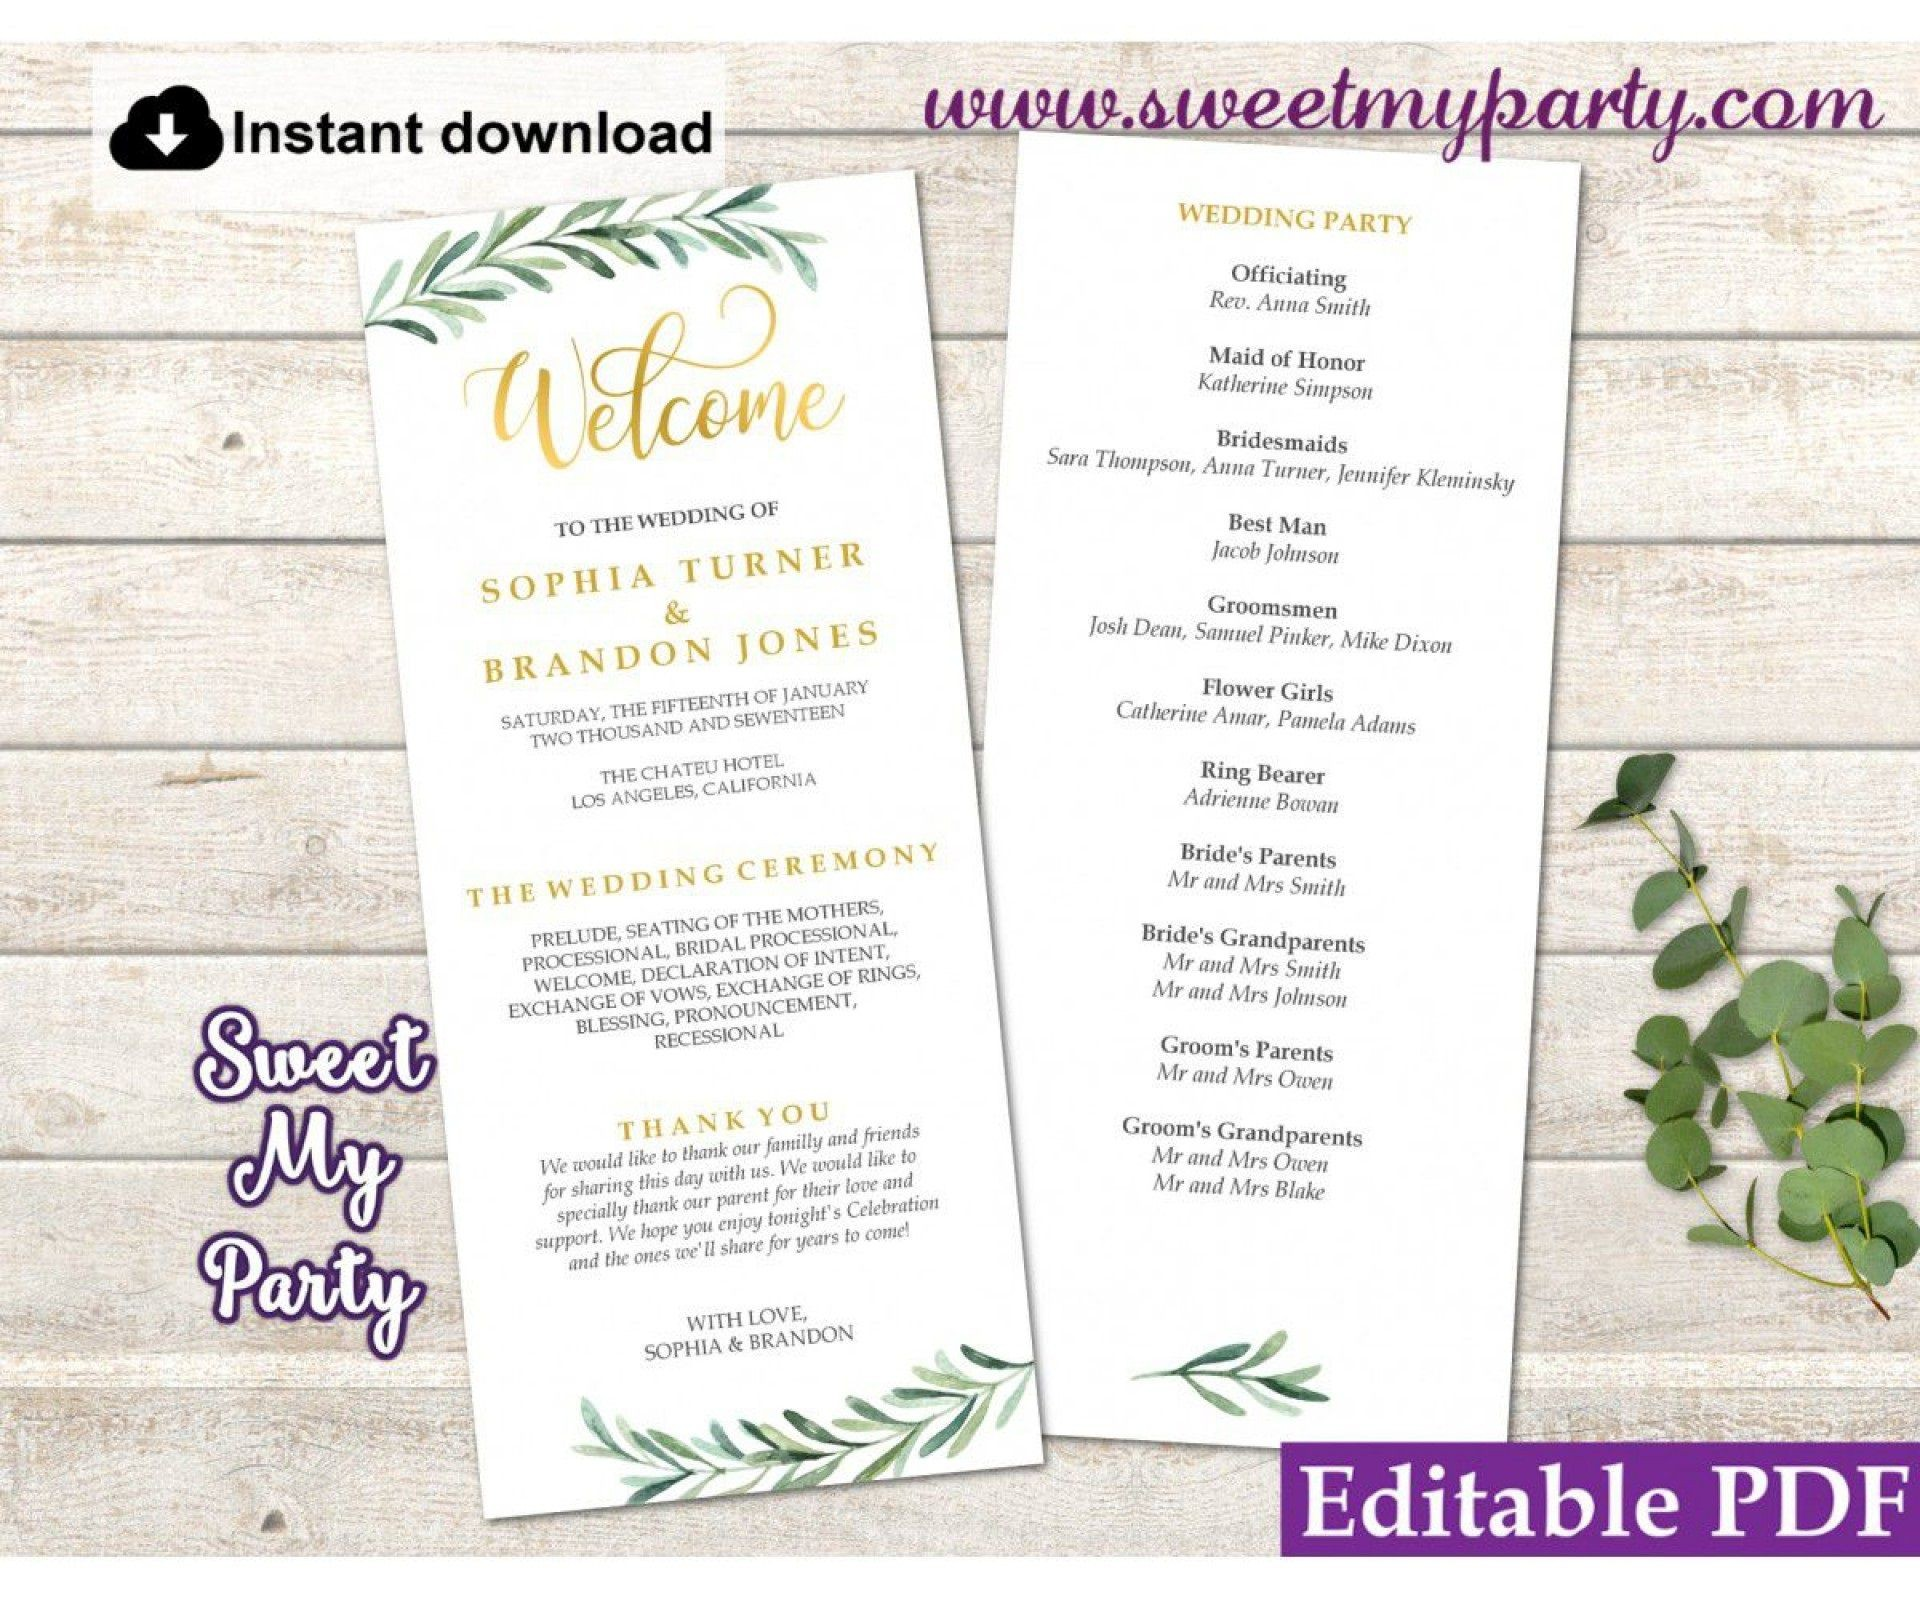 006 Exceptional Wedding Order Of Service Template Word Design  Free Microsoft1920